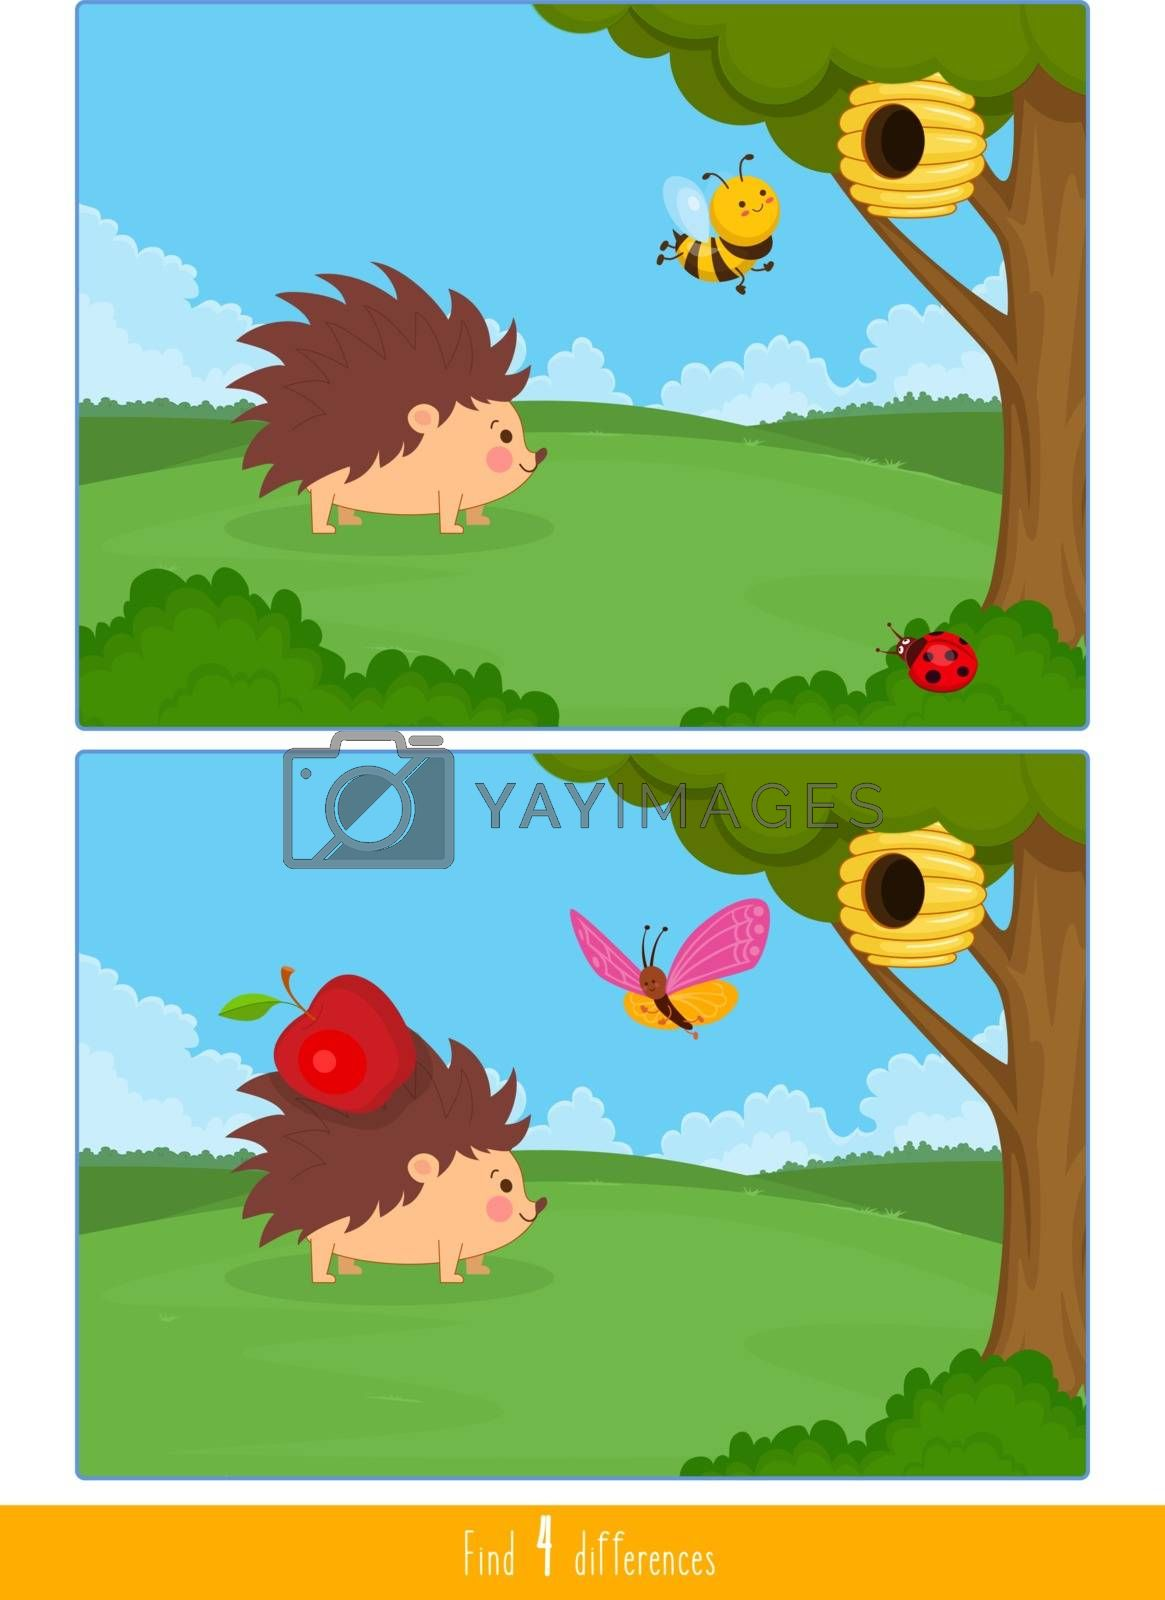 Educational children game, vector. Logic game for kids. Find 4 differences